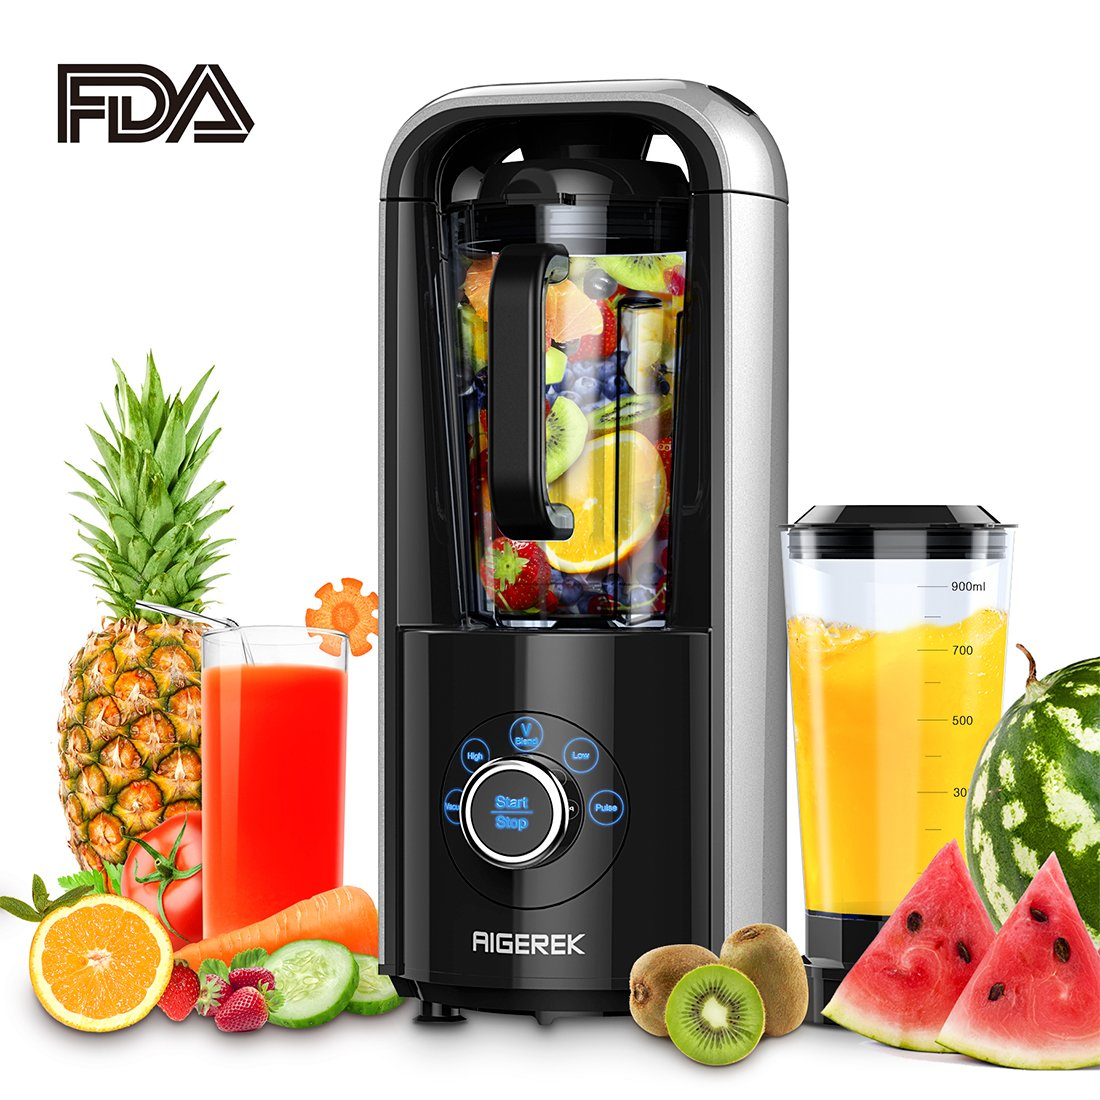 Aigerek Vacuum Blender Antioxidation Function for Ice Fruits Shakes with Recipebook, 1ps Vacuum Cup